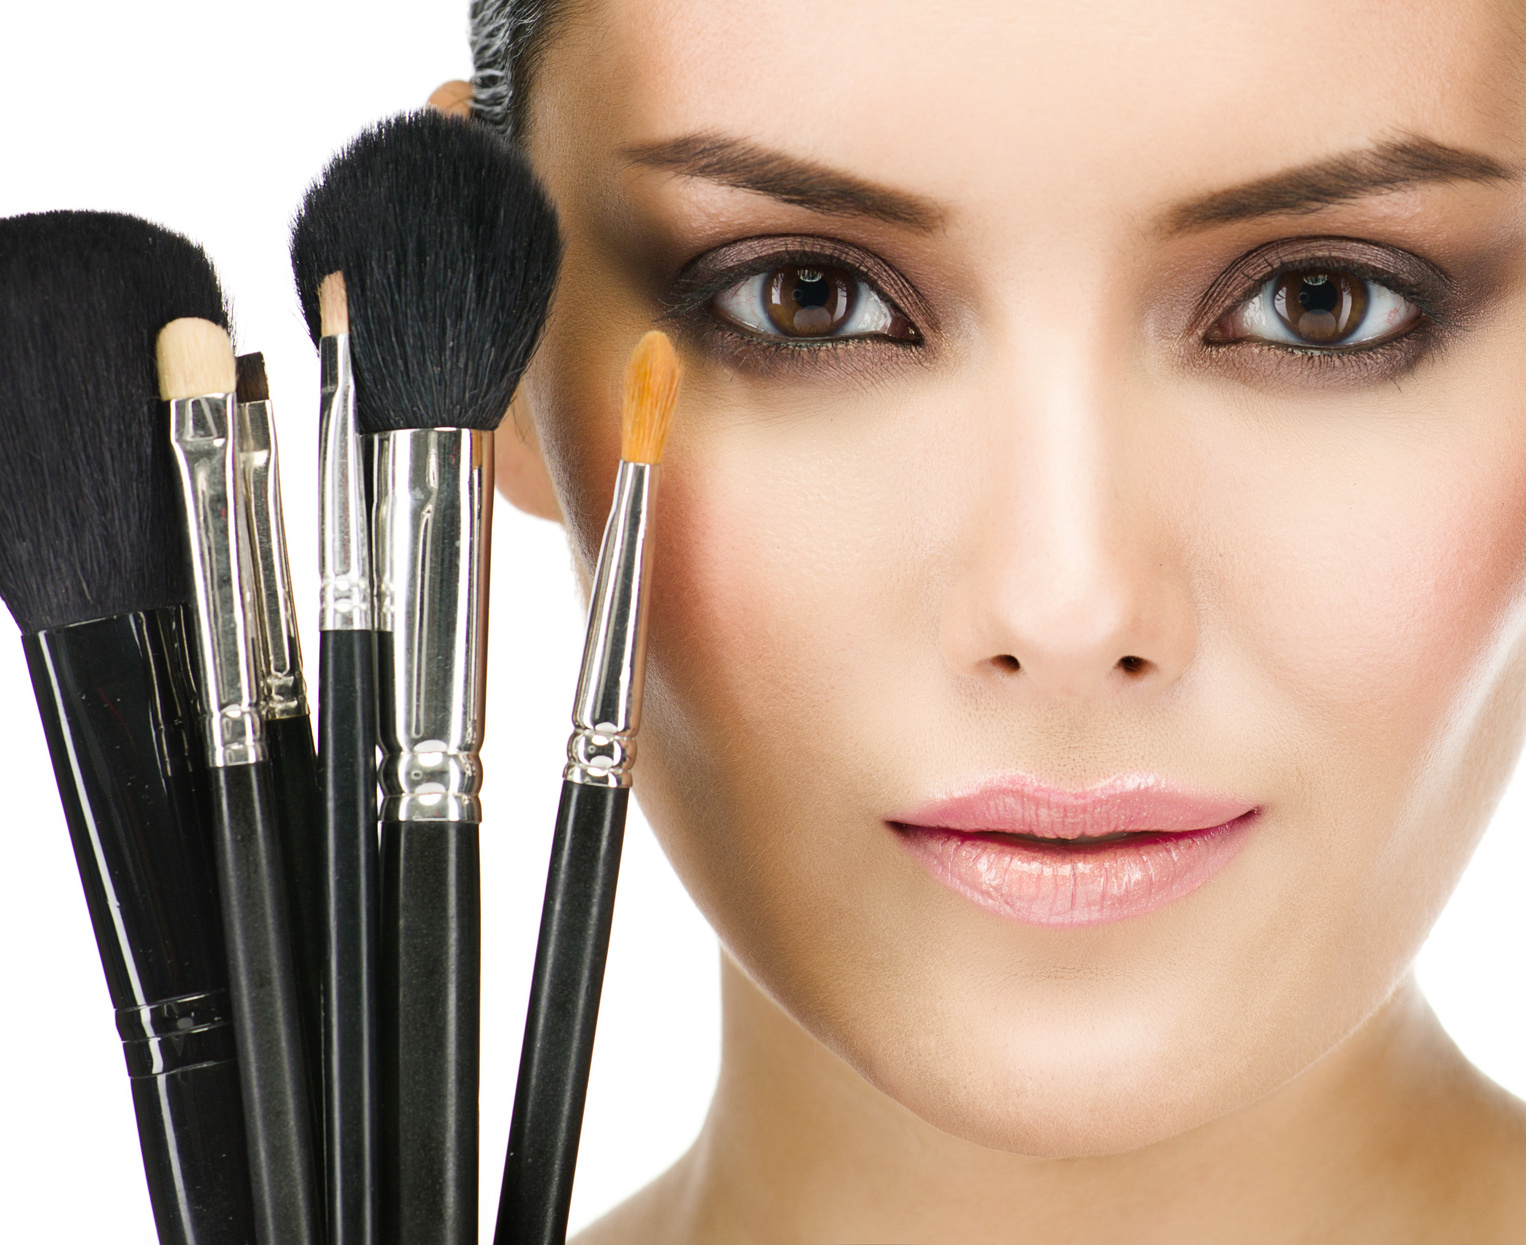 Of makeup brushes and their